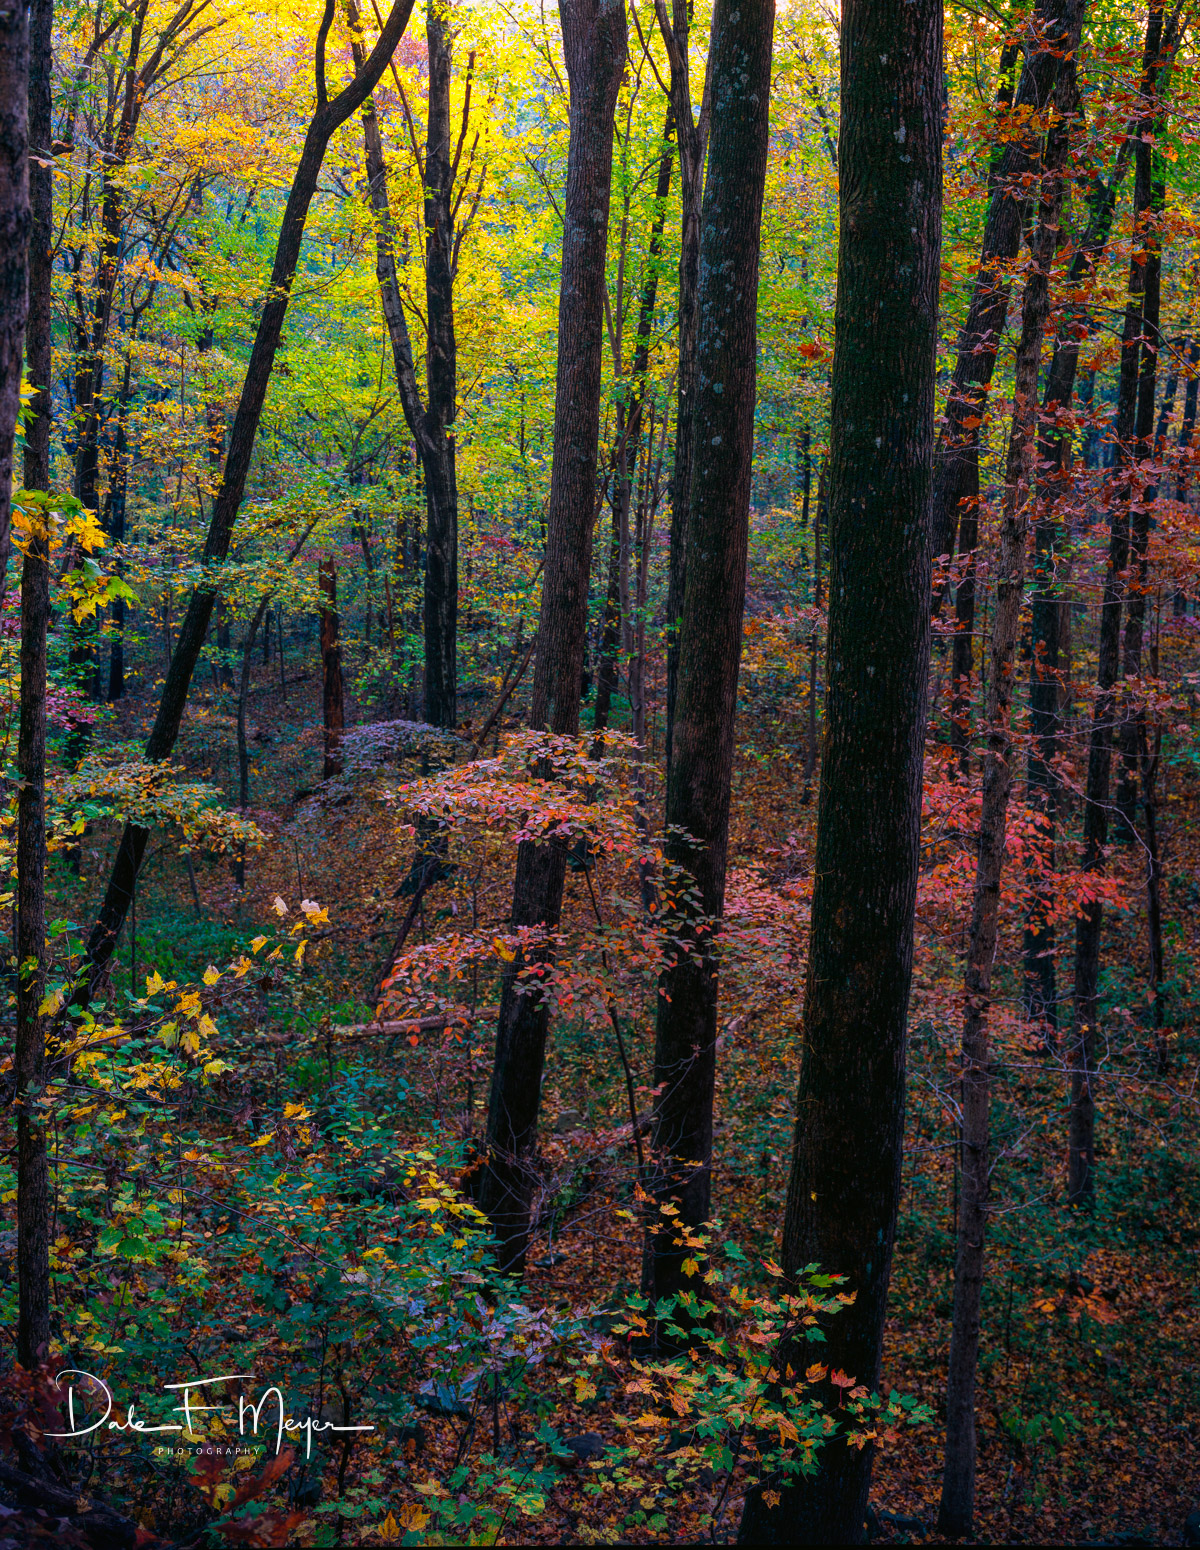 4X5 Fuji 50 Slide Film, Fall 2009, North Arkansas, woodlands and trees gallerie, photo